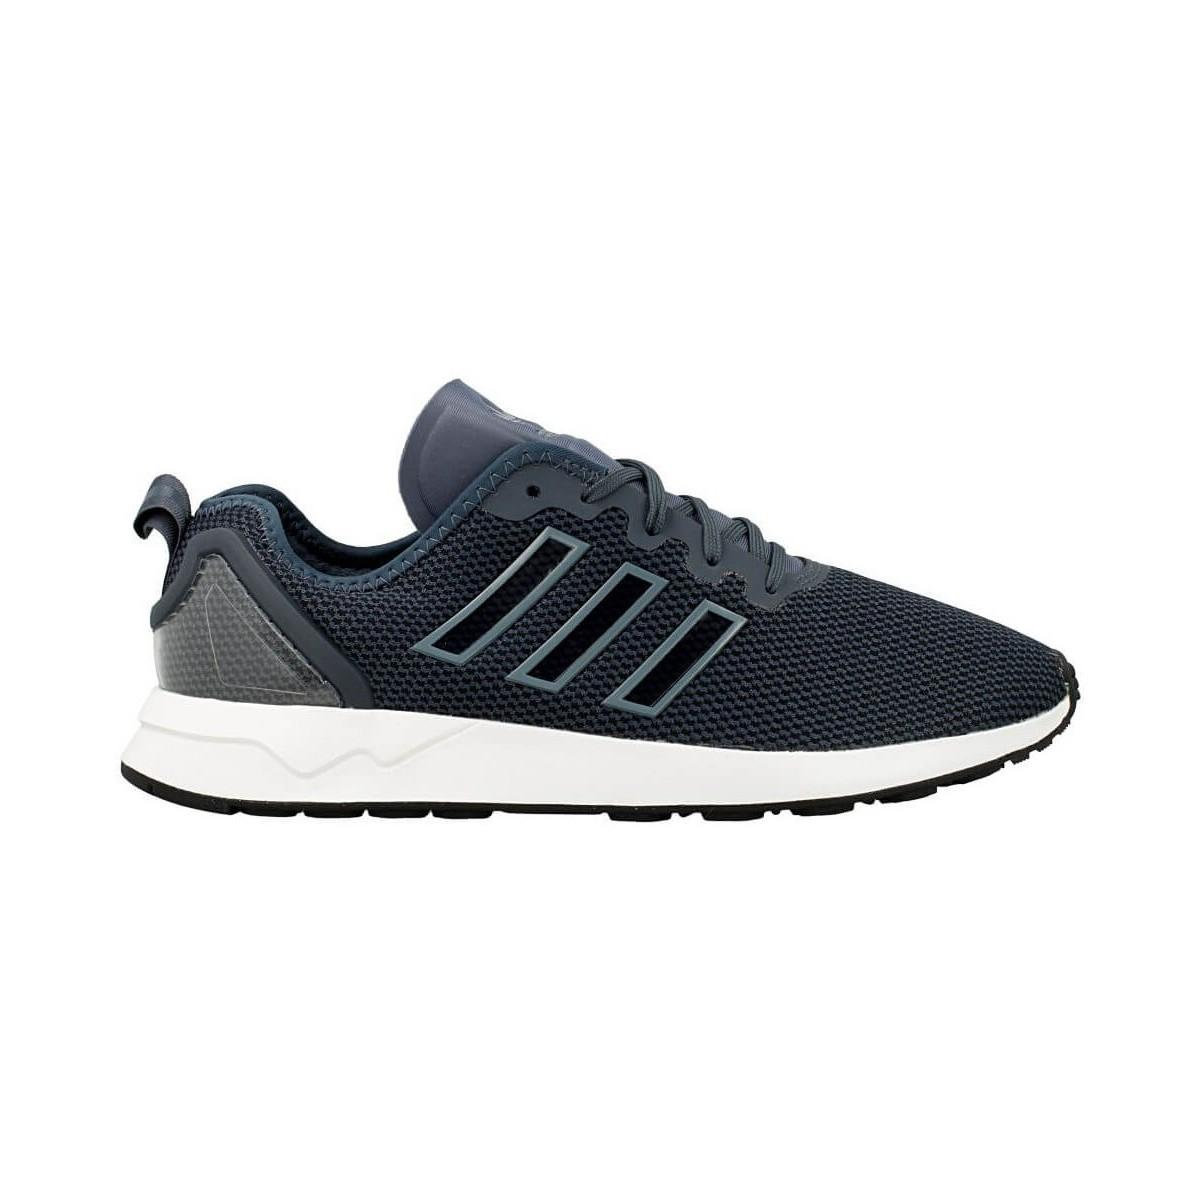 e045cb2adf1a4 adidas Zx Flux Adv Men s Shoes (trainers) In Multicolour in Blue for ...